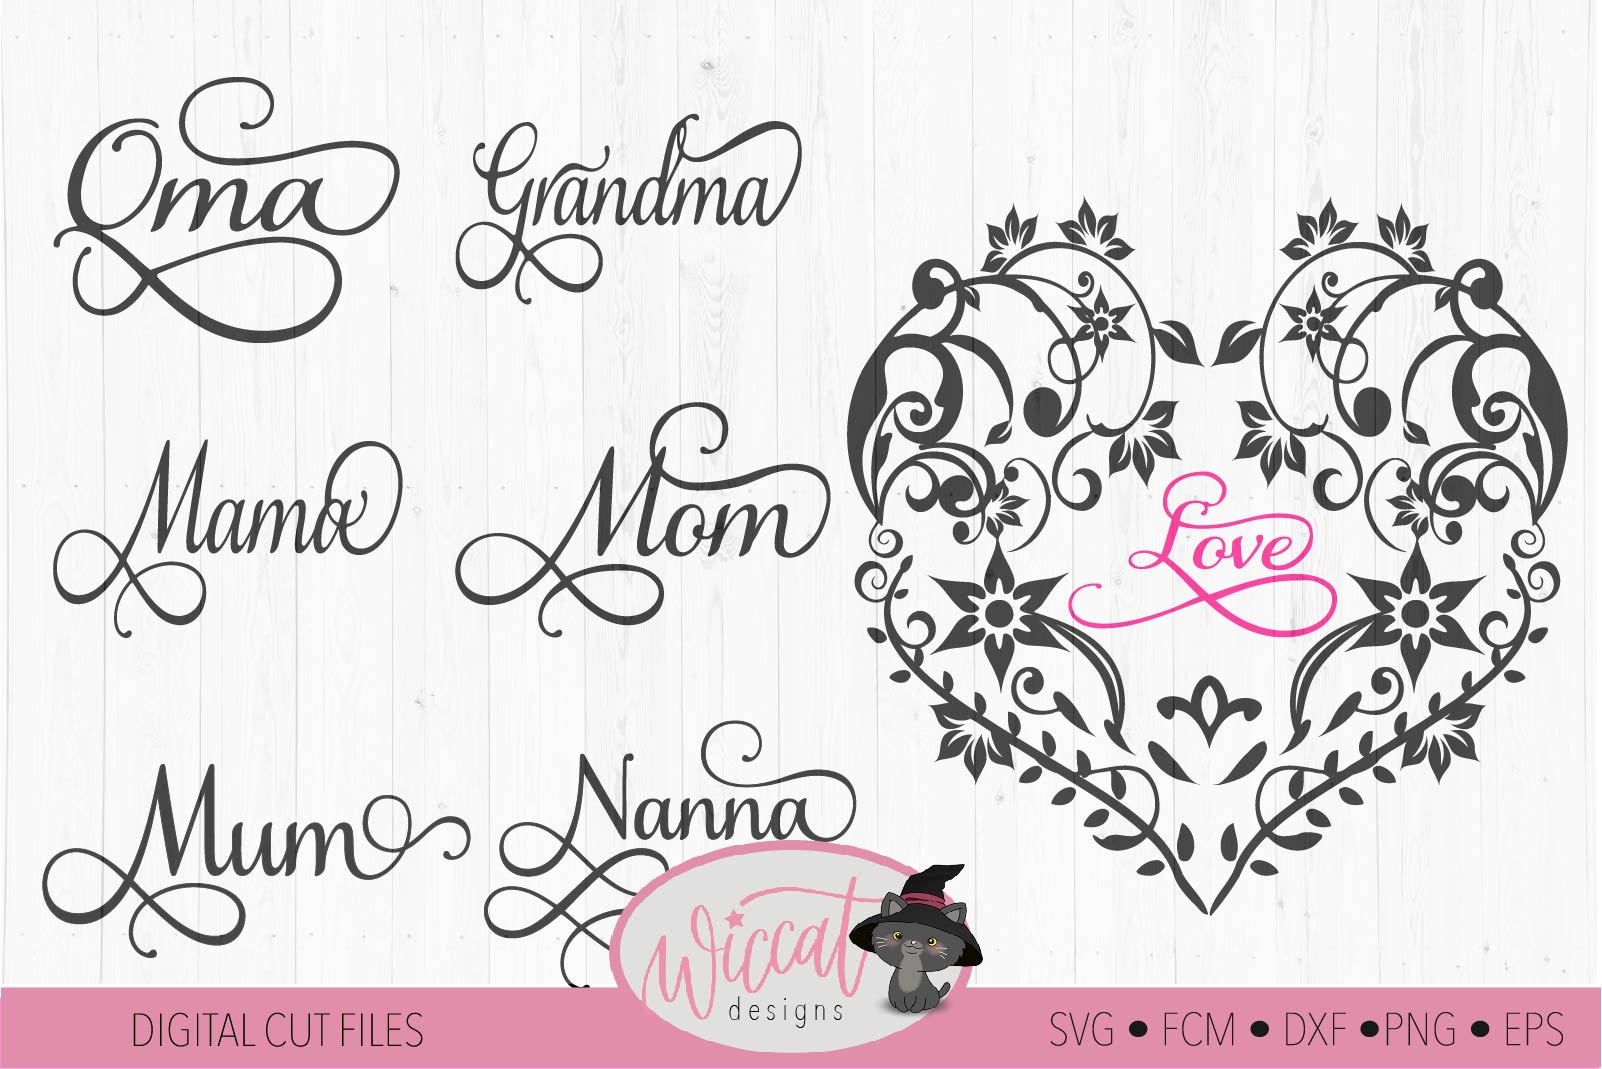 Flower heart svg, mothers day, lace cut file, glass block example image 2